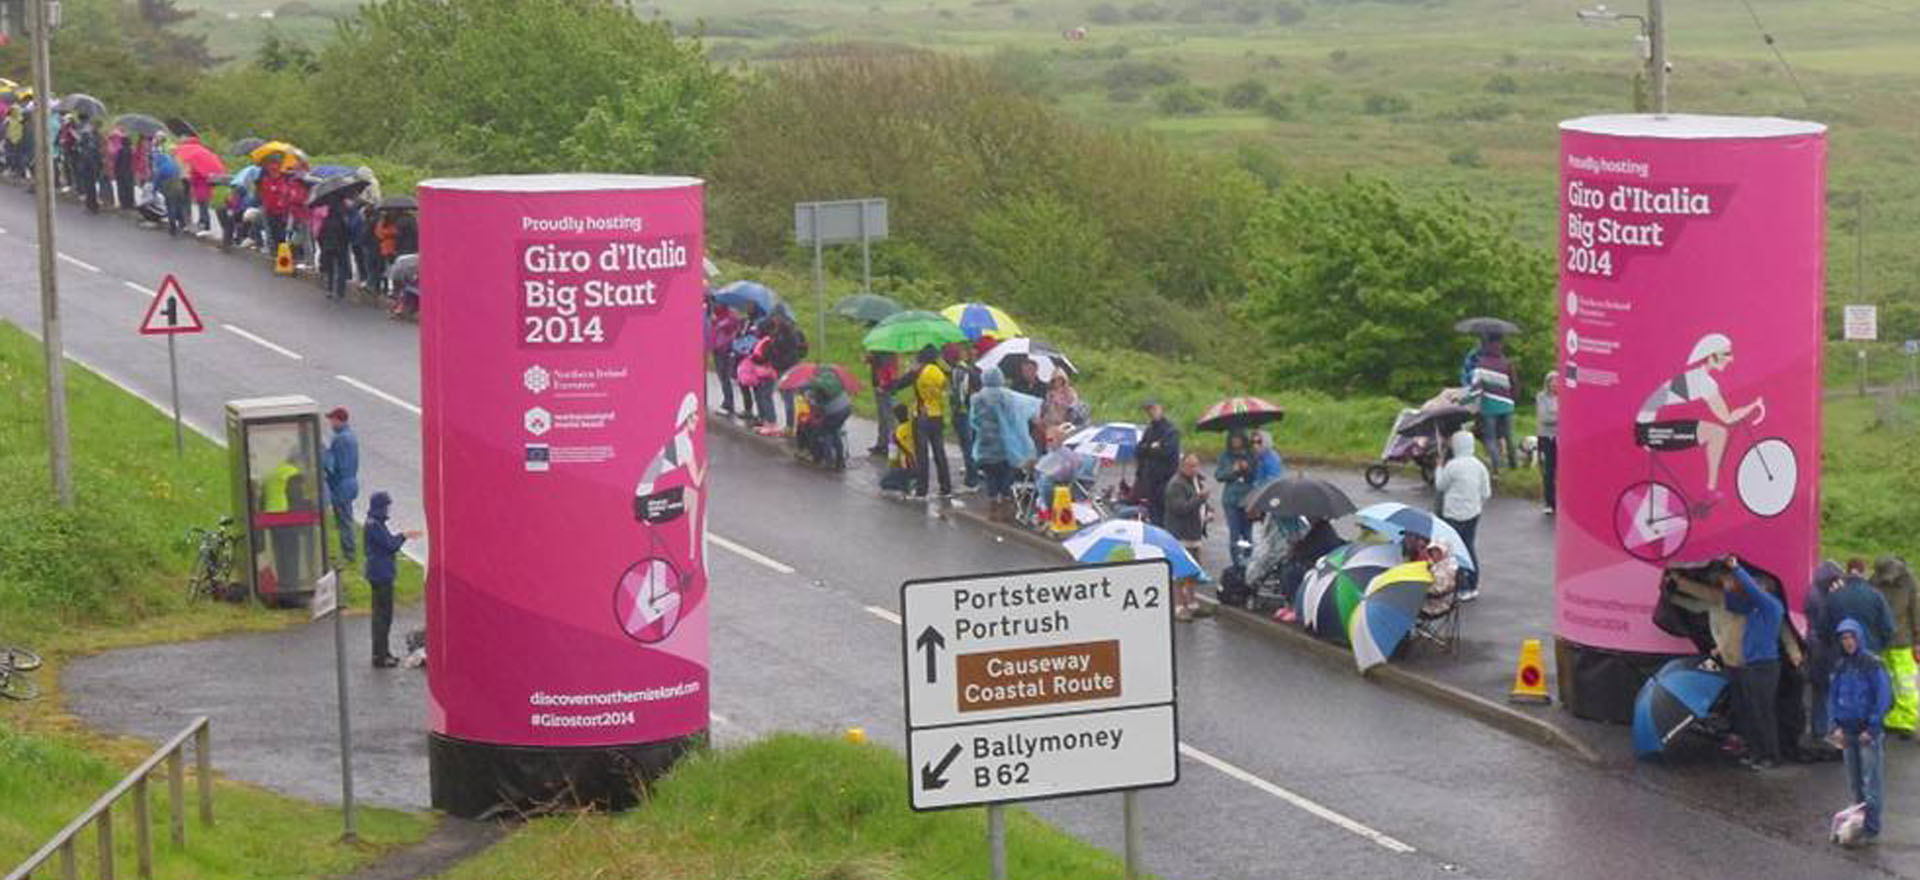 Mobile advertising towers at bike race